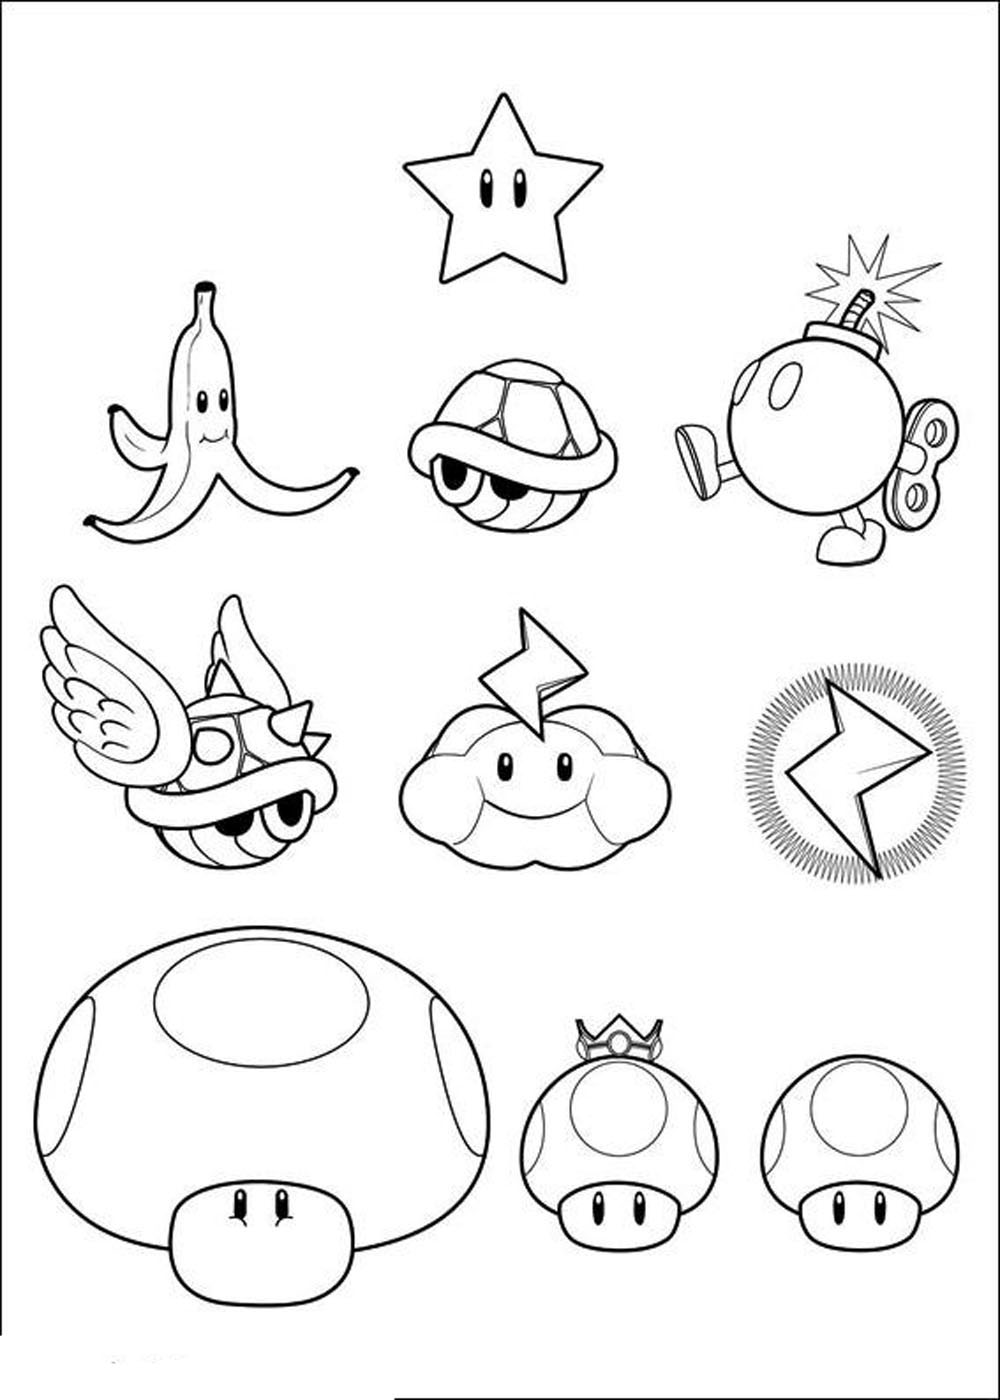 super-mario-bros-printable-coloring-pages - Best Apps For Kids